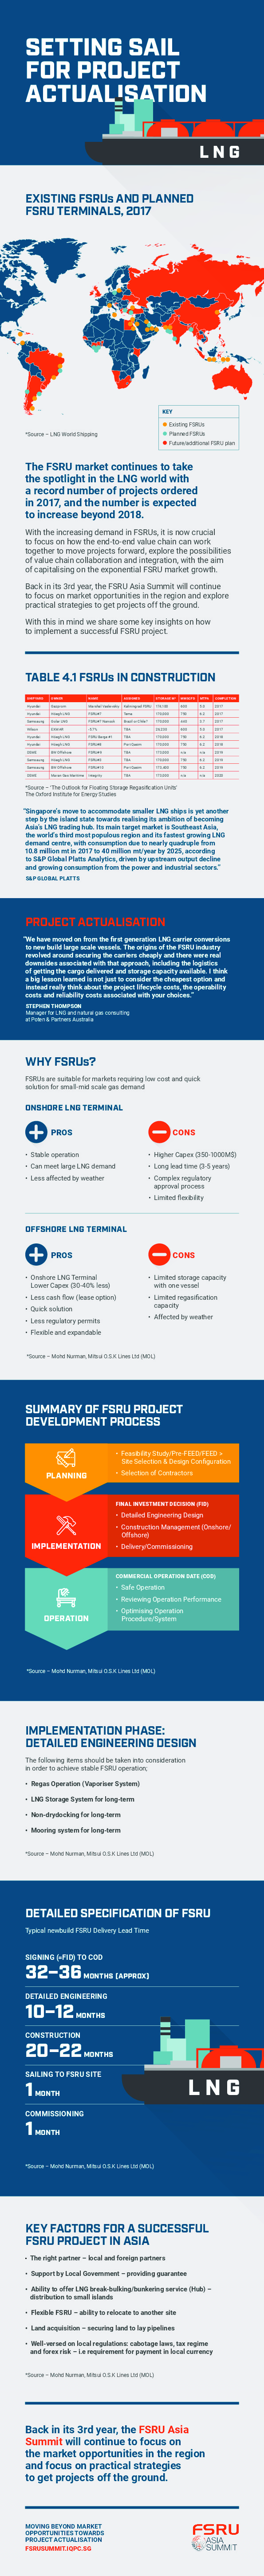 What FPSO Projects are in the pipeline up until 2030? | FPSO Network